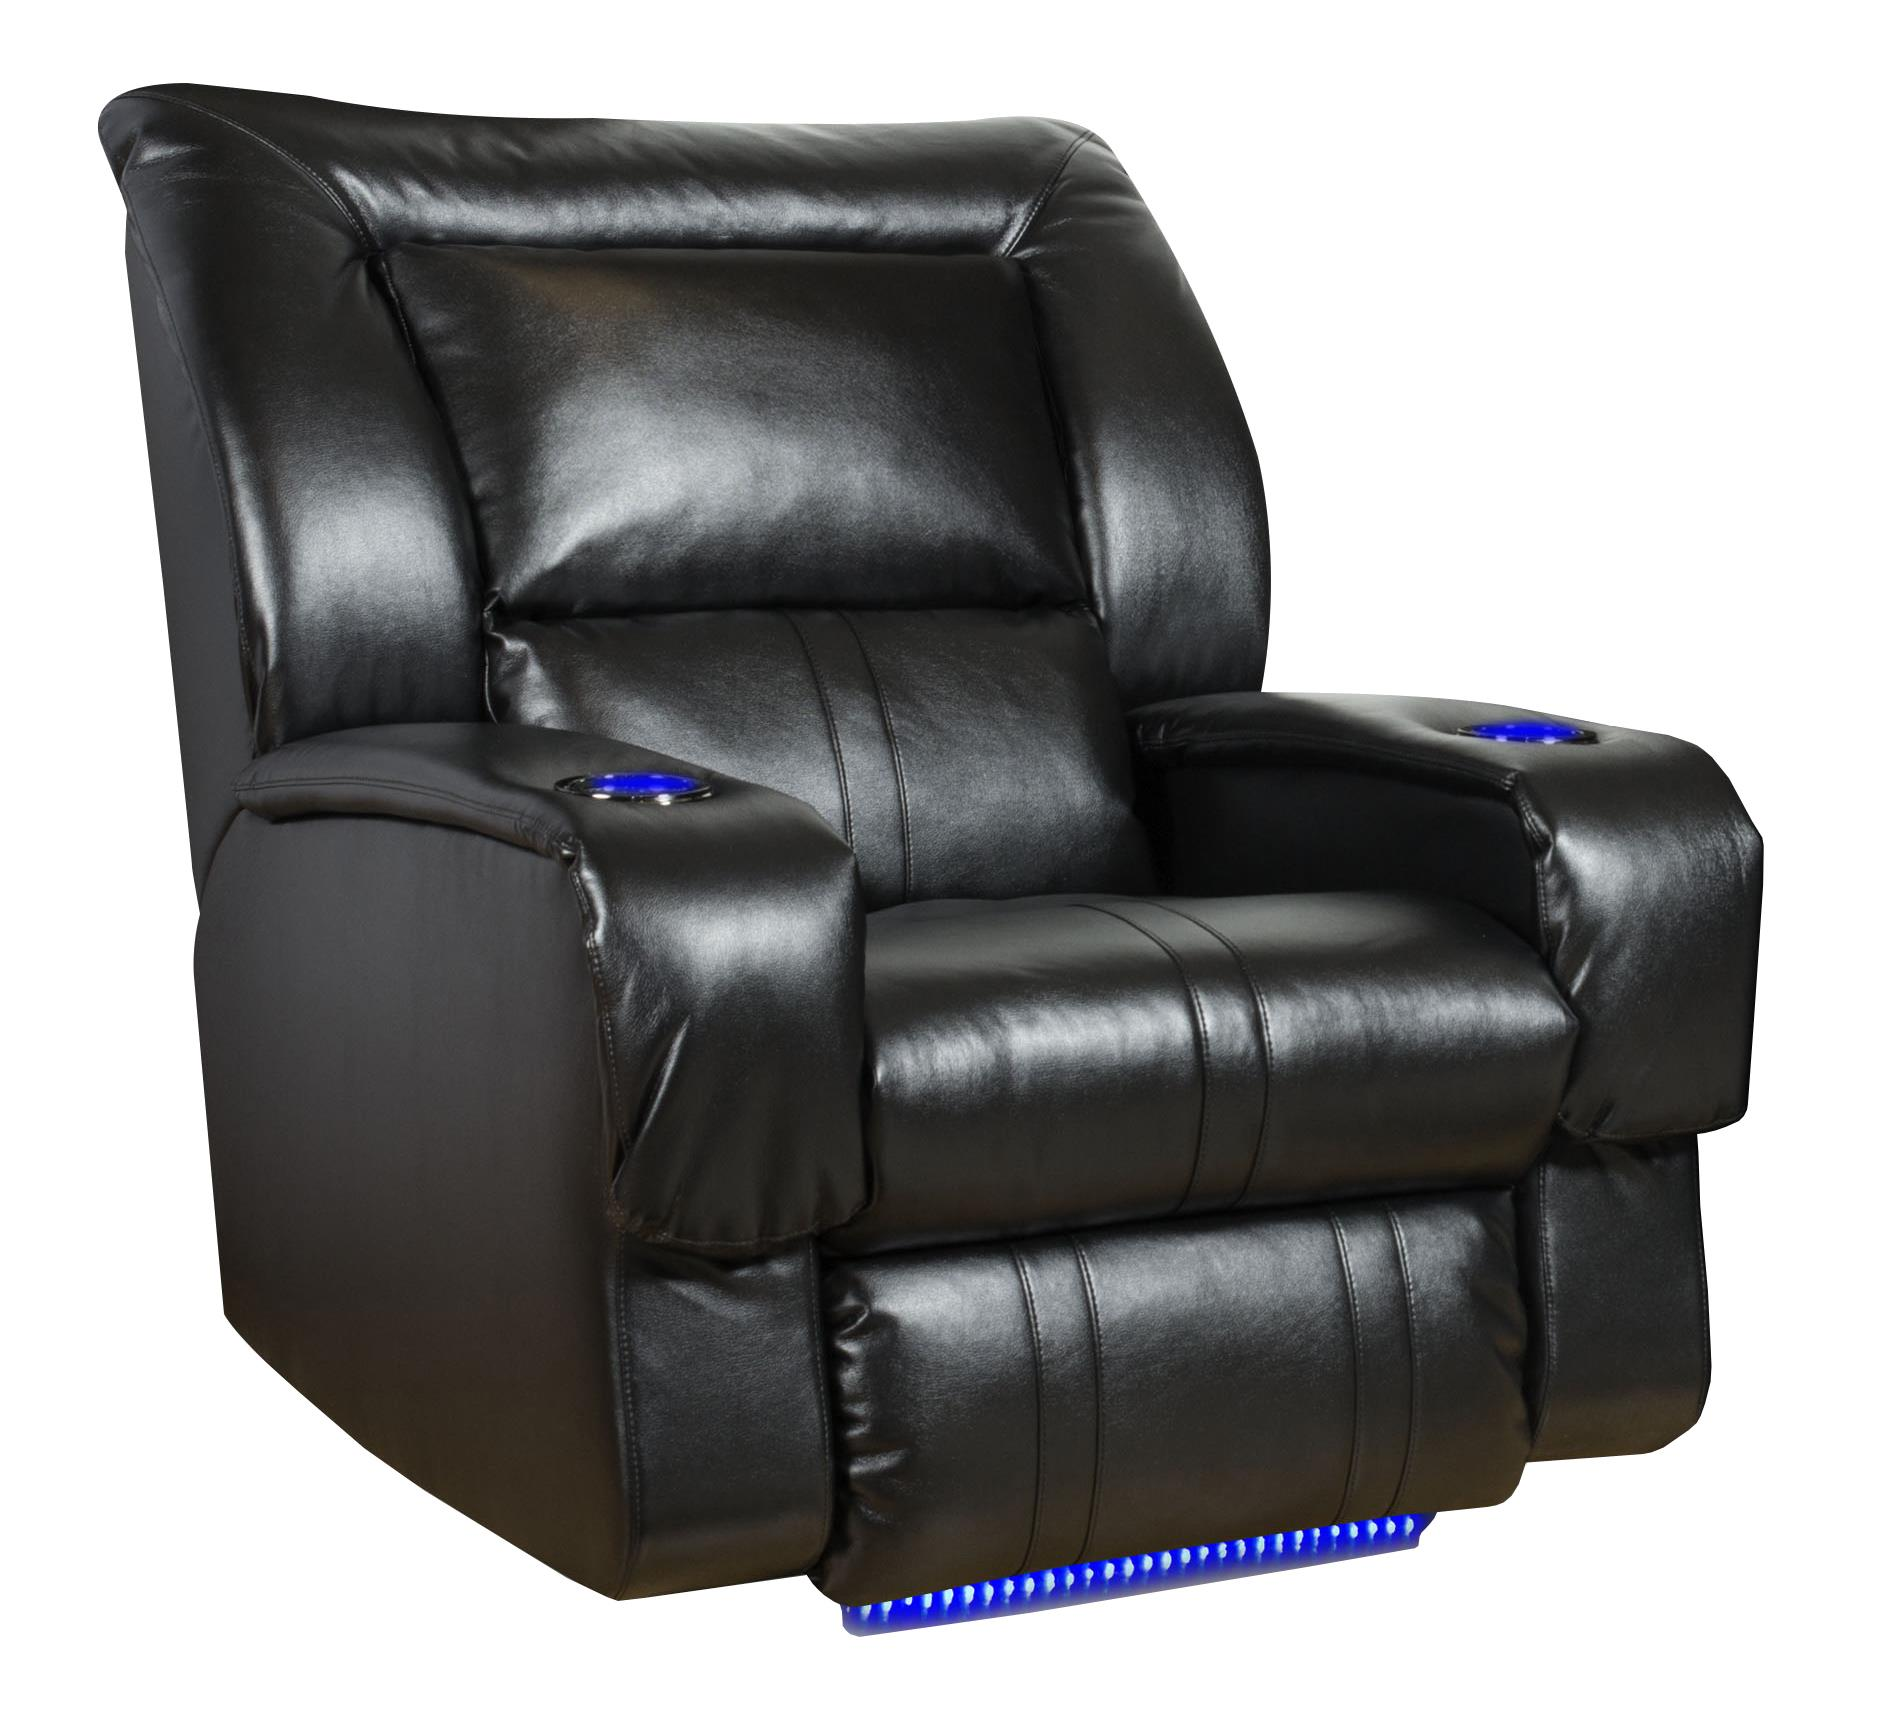 Lay-Flat Recliner w/ Lights & Cup-Holders